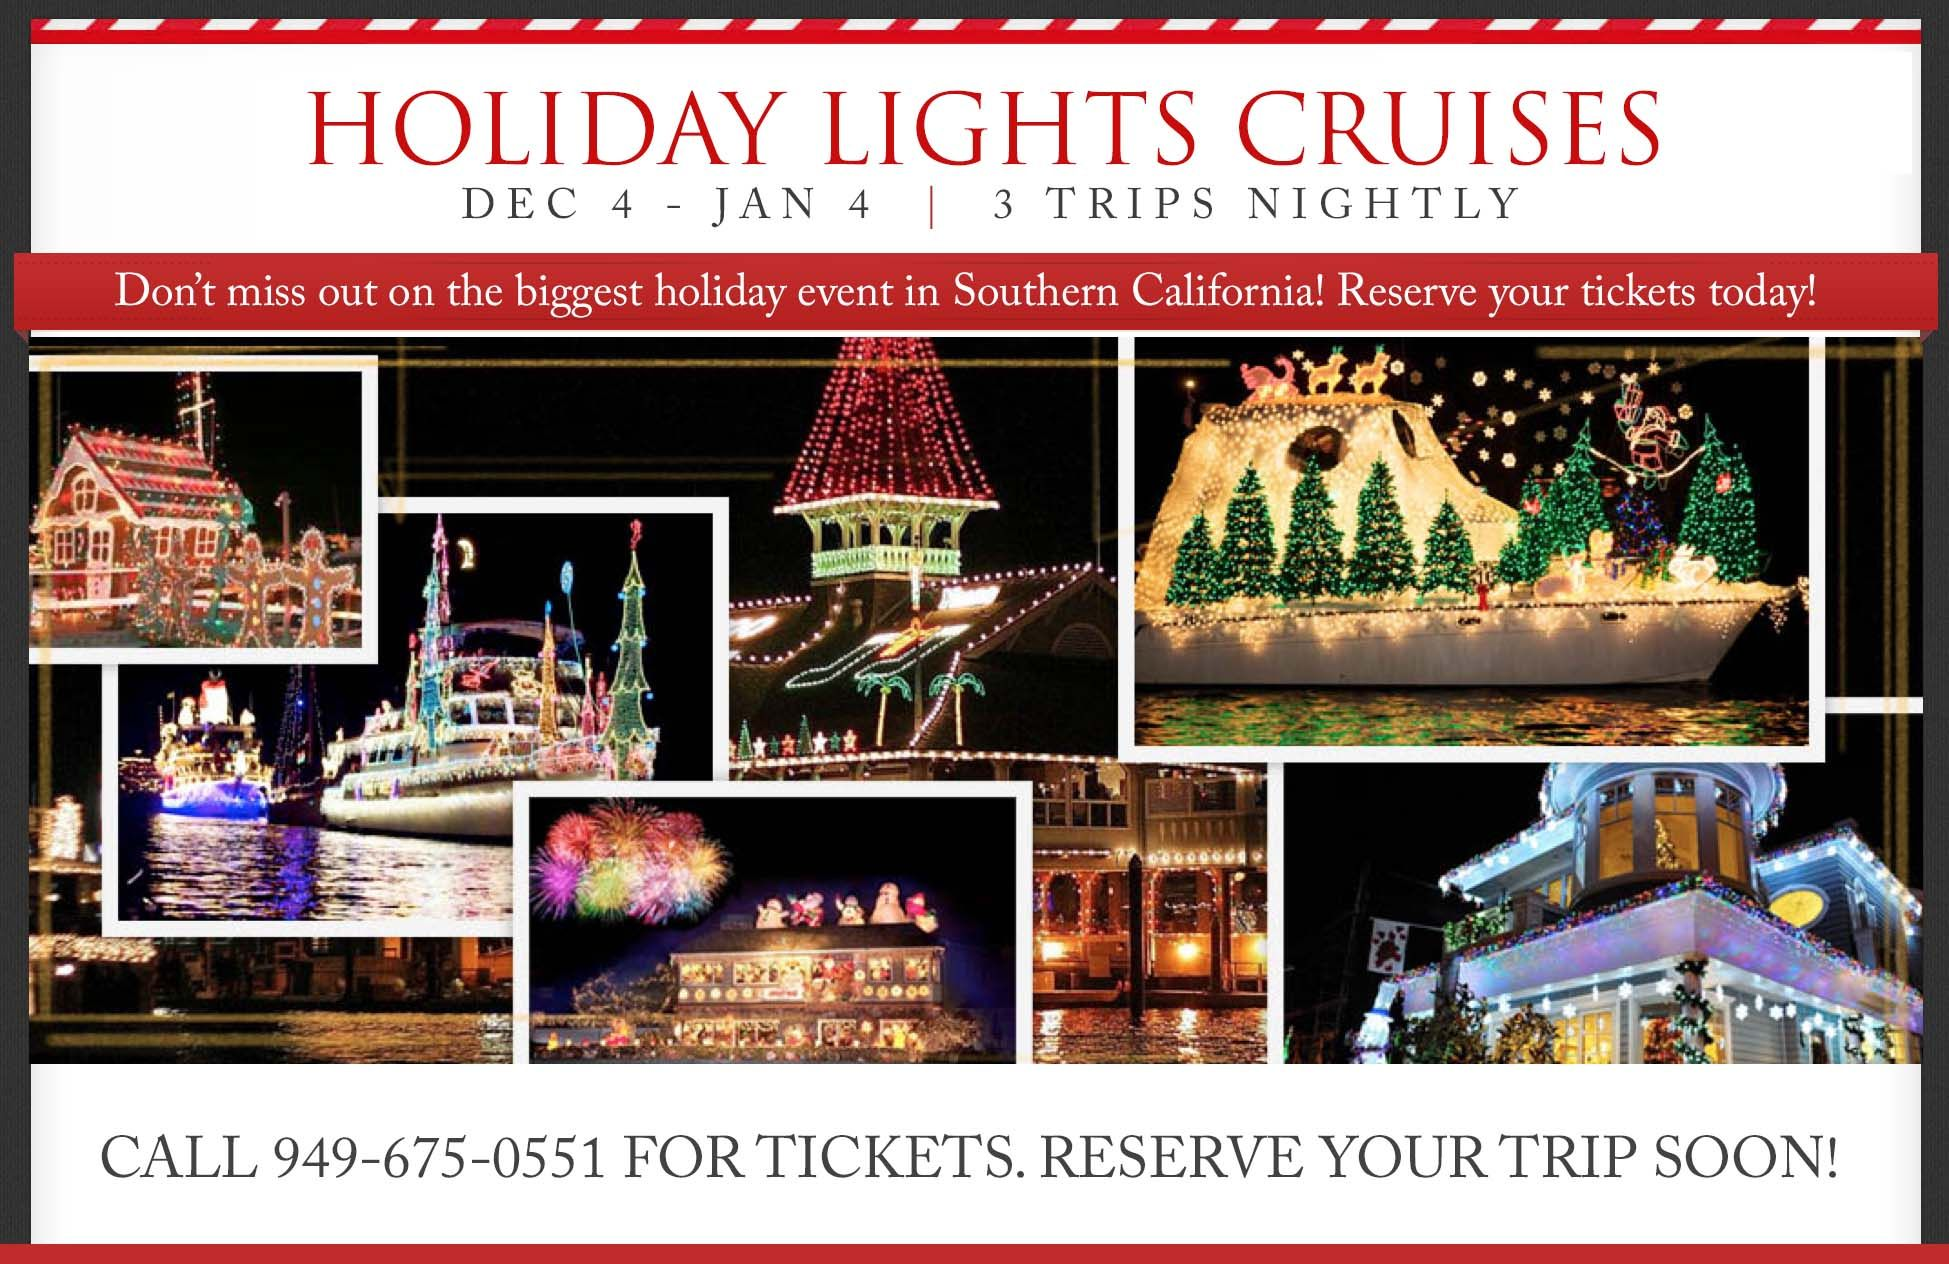 Newport Beach Christmas Lights Cruise.Visit Www Christmasparadeboats Com To Find Out About Our